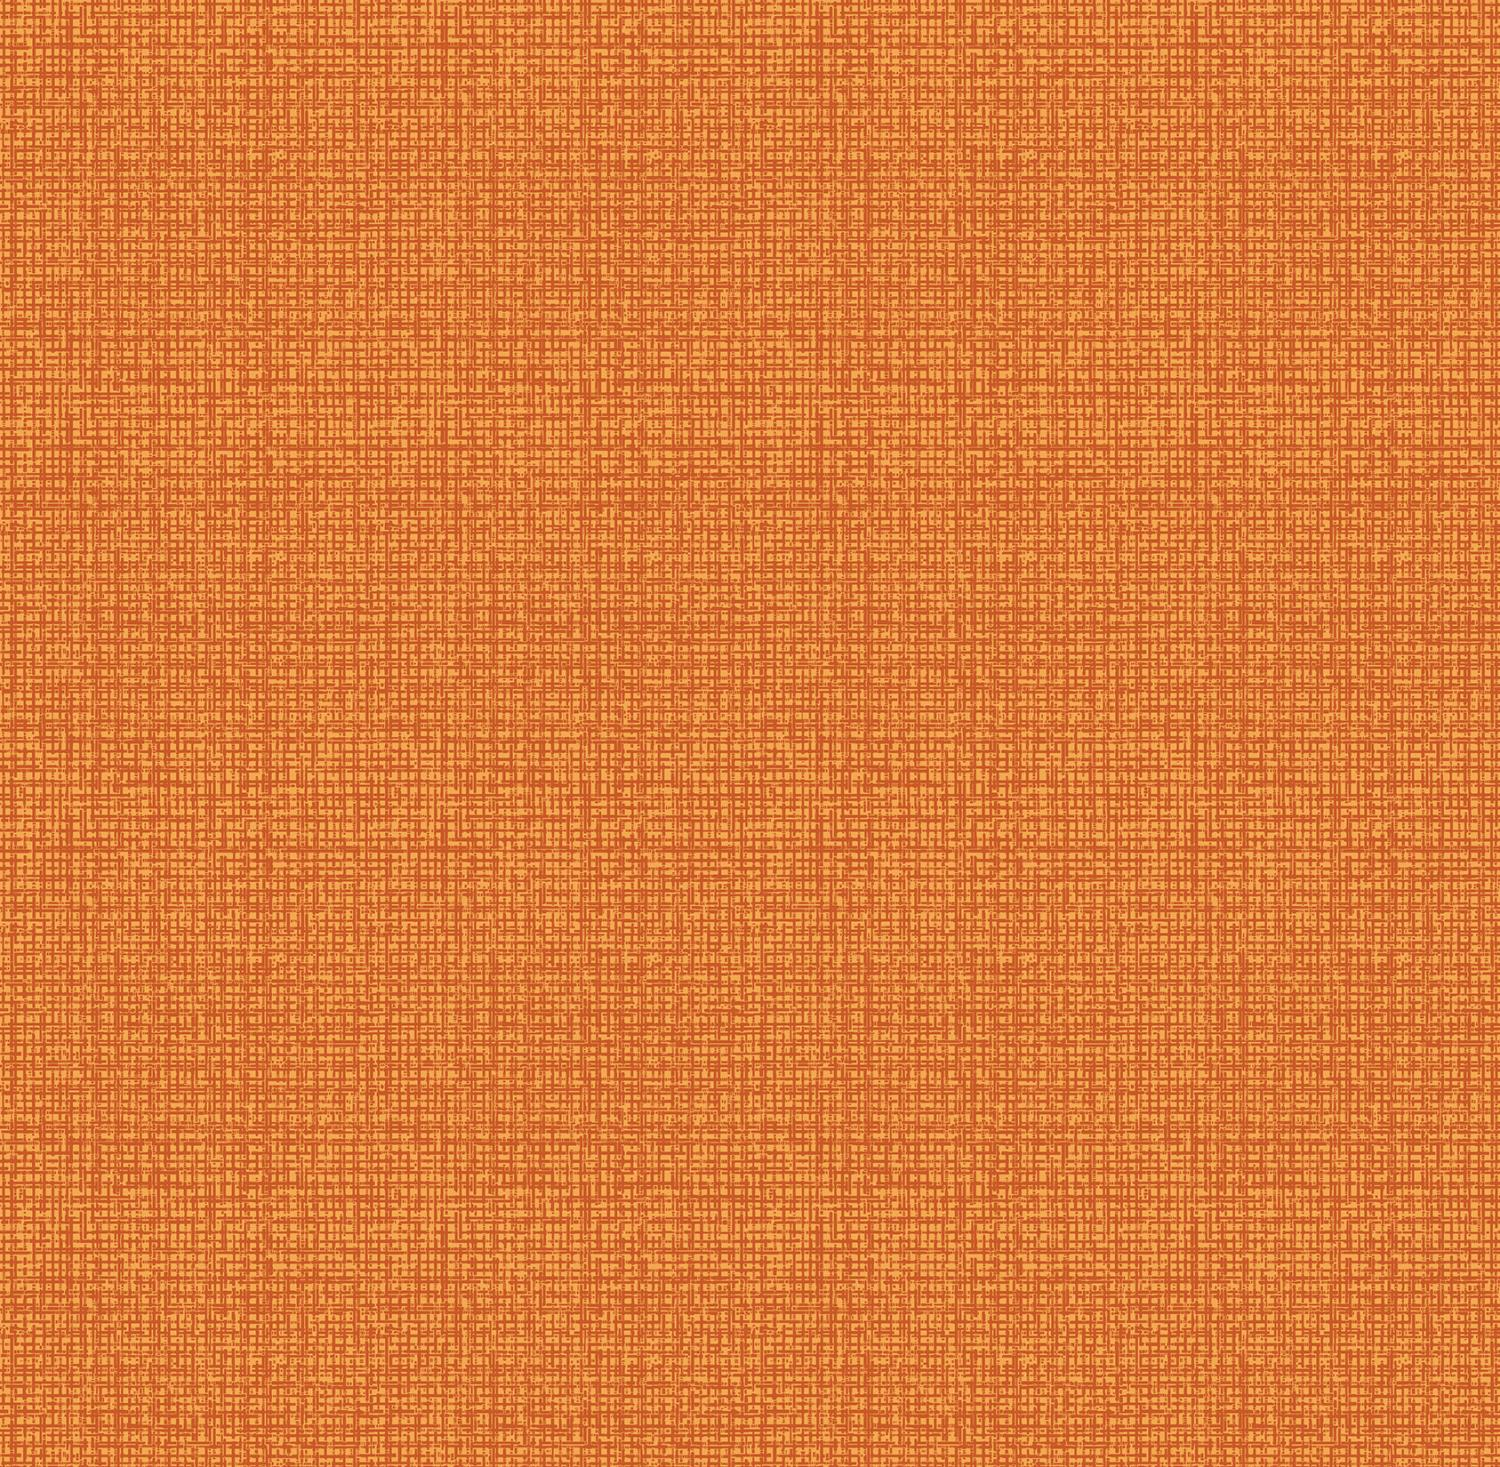 Color Weave #38 Orange